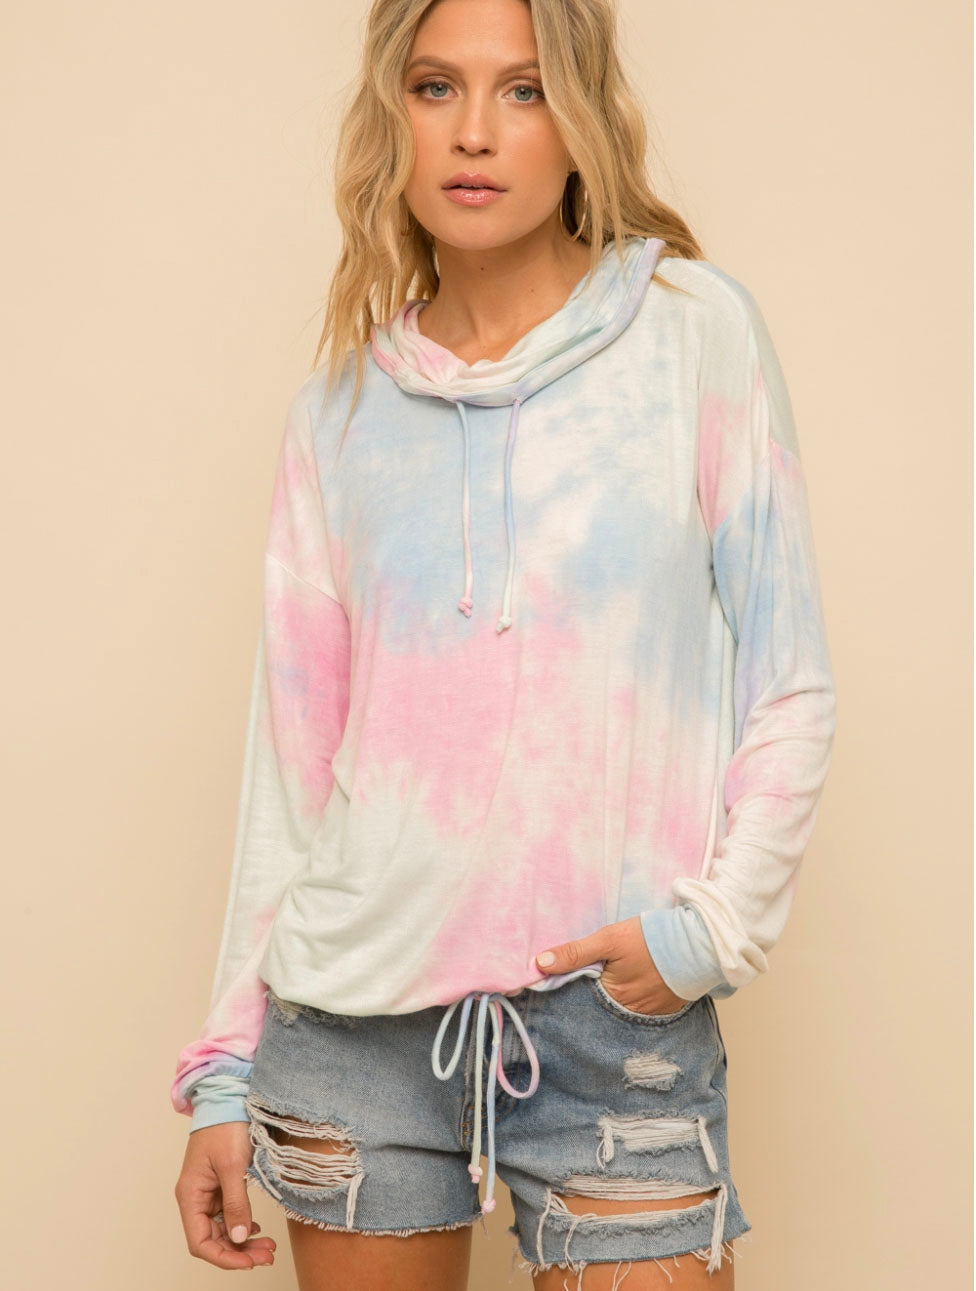 Hem & Thread Tie Dye Pull Over in Cotton Candy